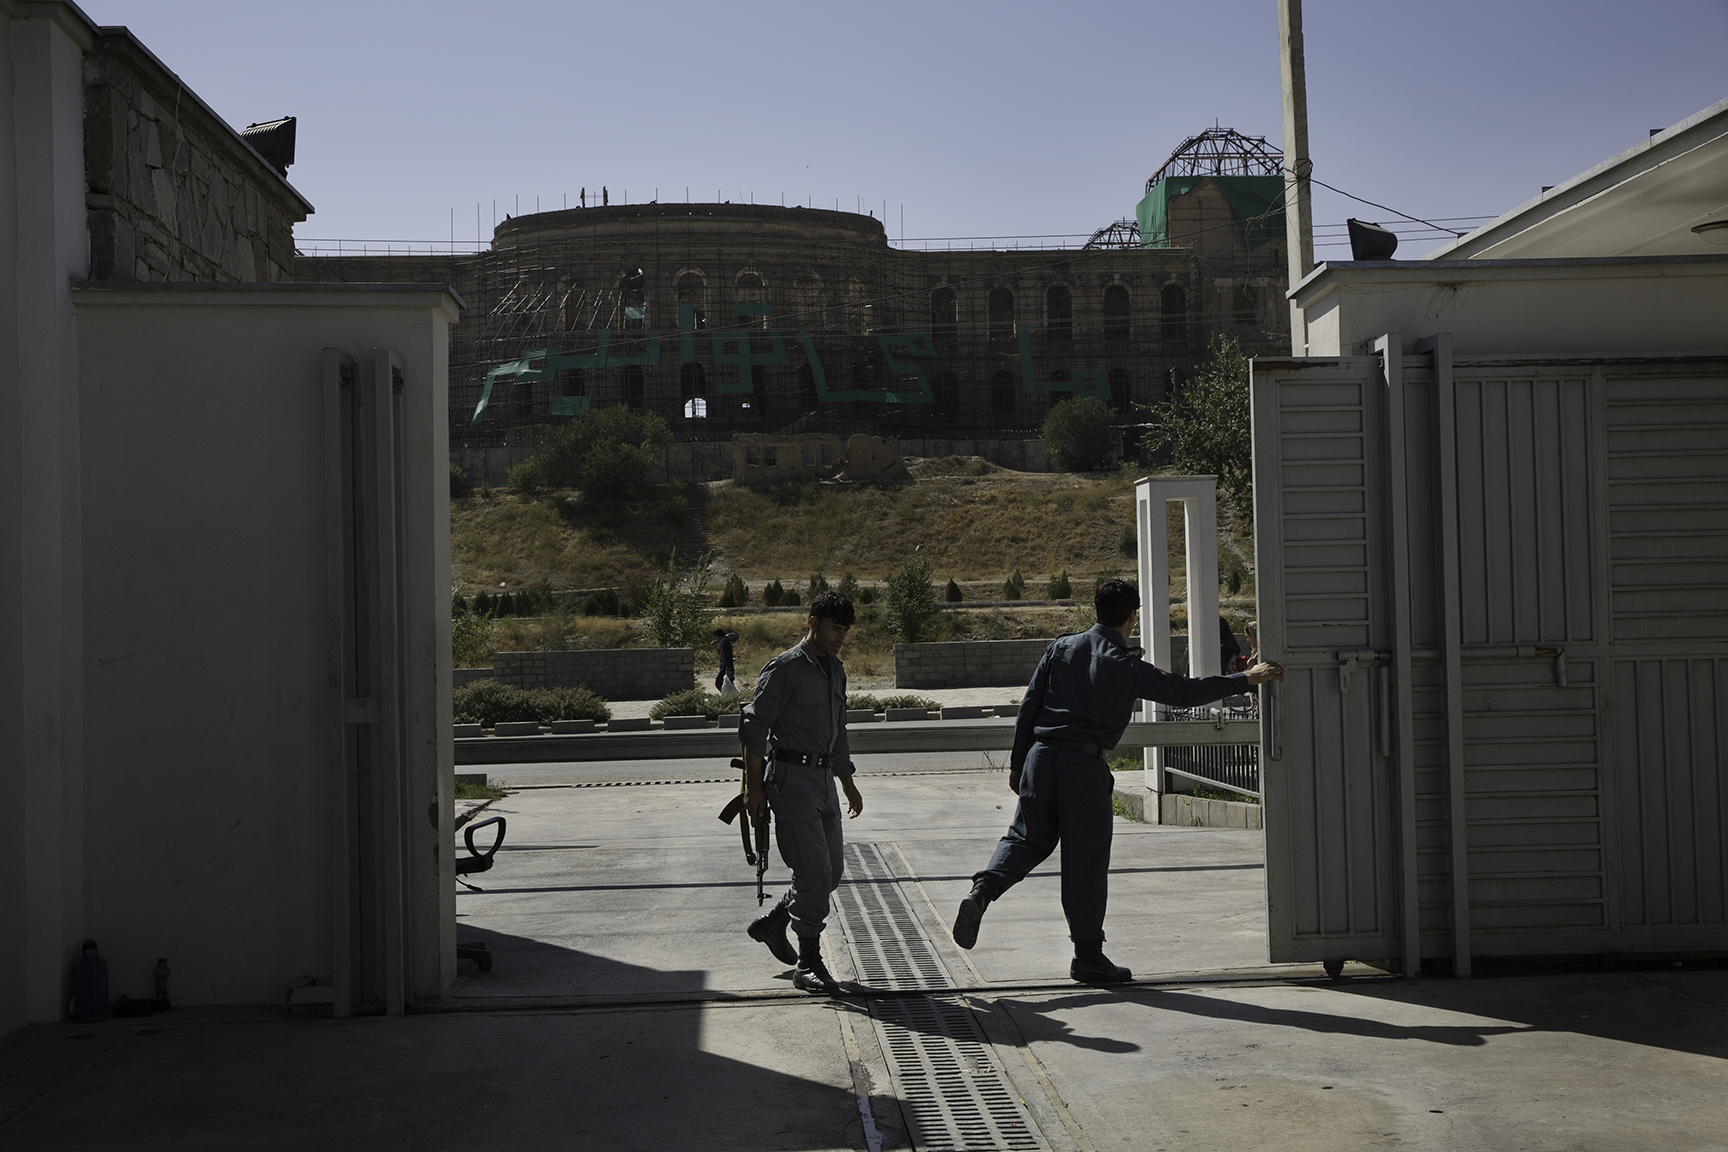 Two National Police officers open the metal gates to the National Museum of Afghanistan. This entrance, which looks across to Darulaman Palace, was installed in 2013 with funds from the U.S. Embassy, Kabul, to enhance security of vehicles entering the museum grounds.